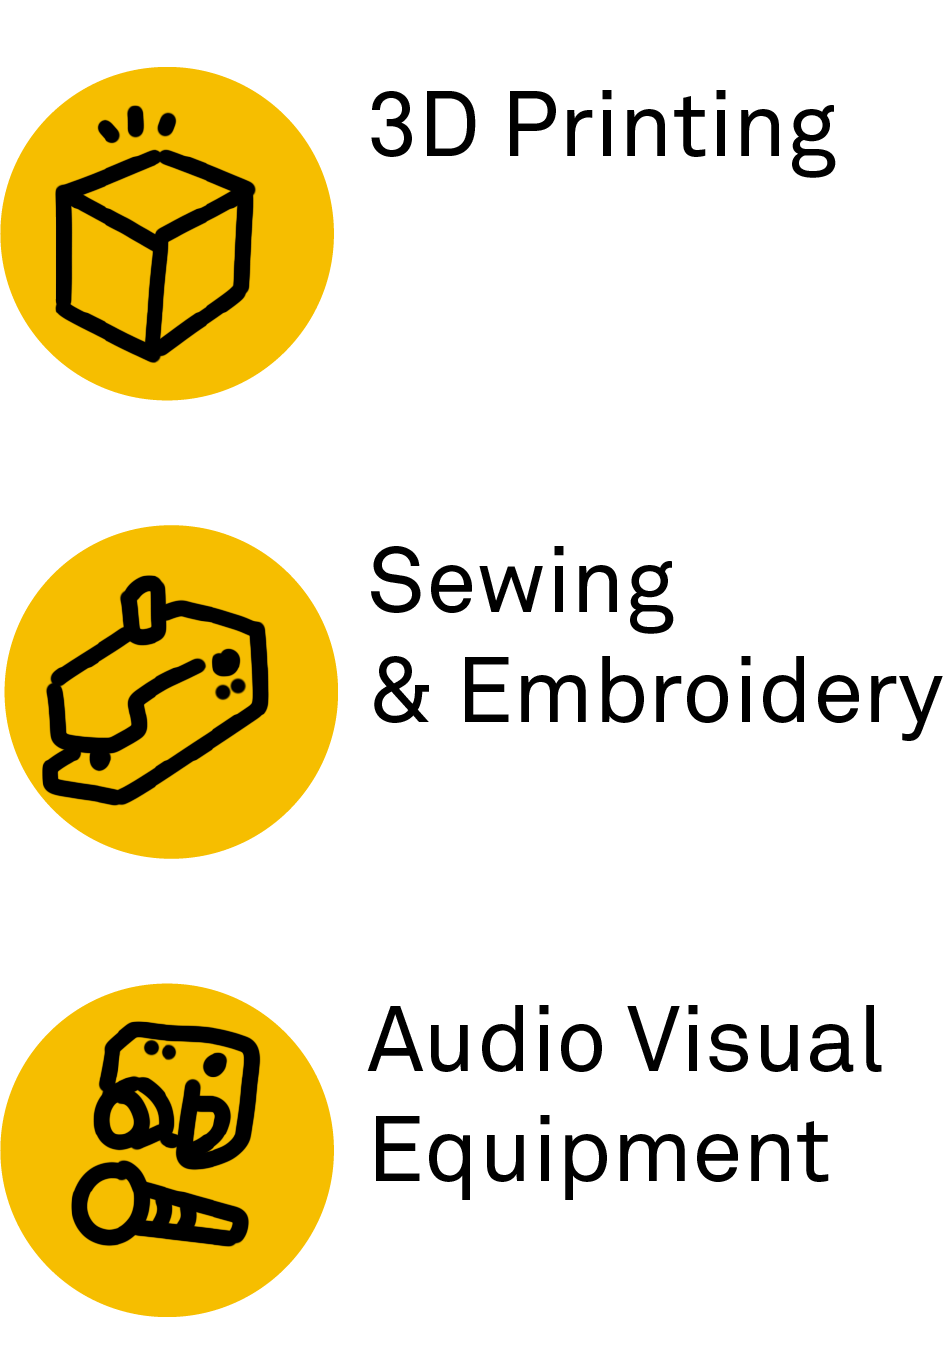 "Box Icon,Sewing Machine Icon,Camera and Mic Icon Text: ""3D Printing, Sewing and Embroidery,Audio Visual Equipment"" """